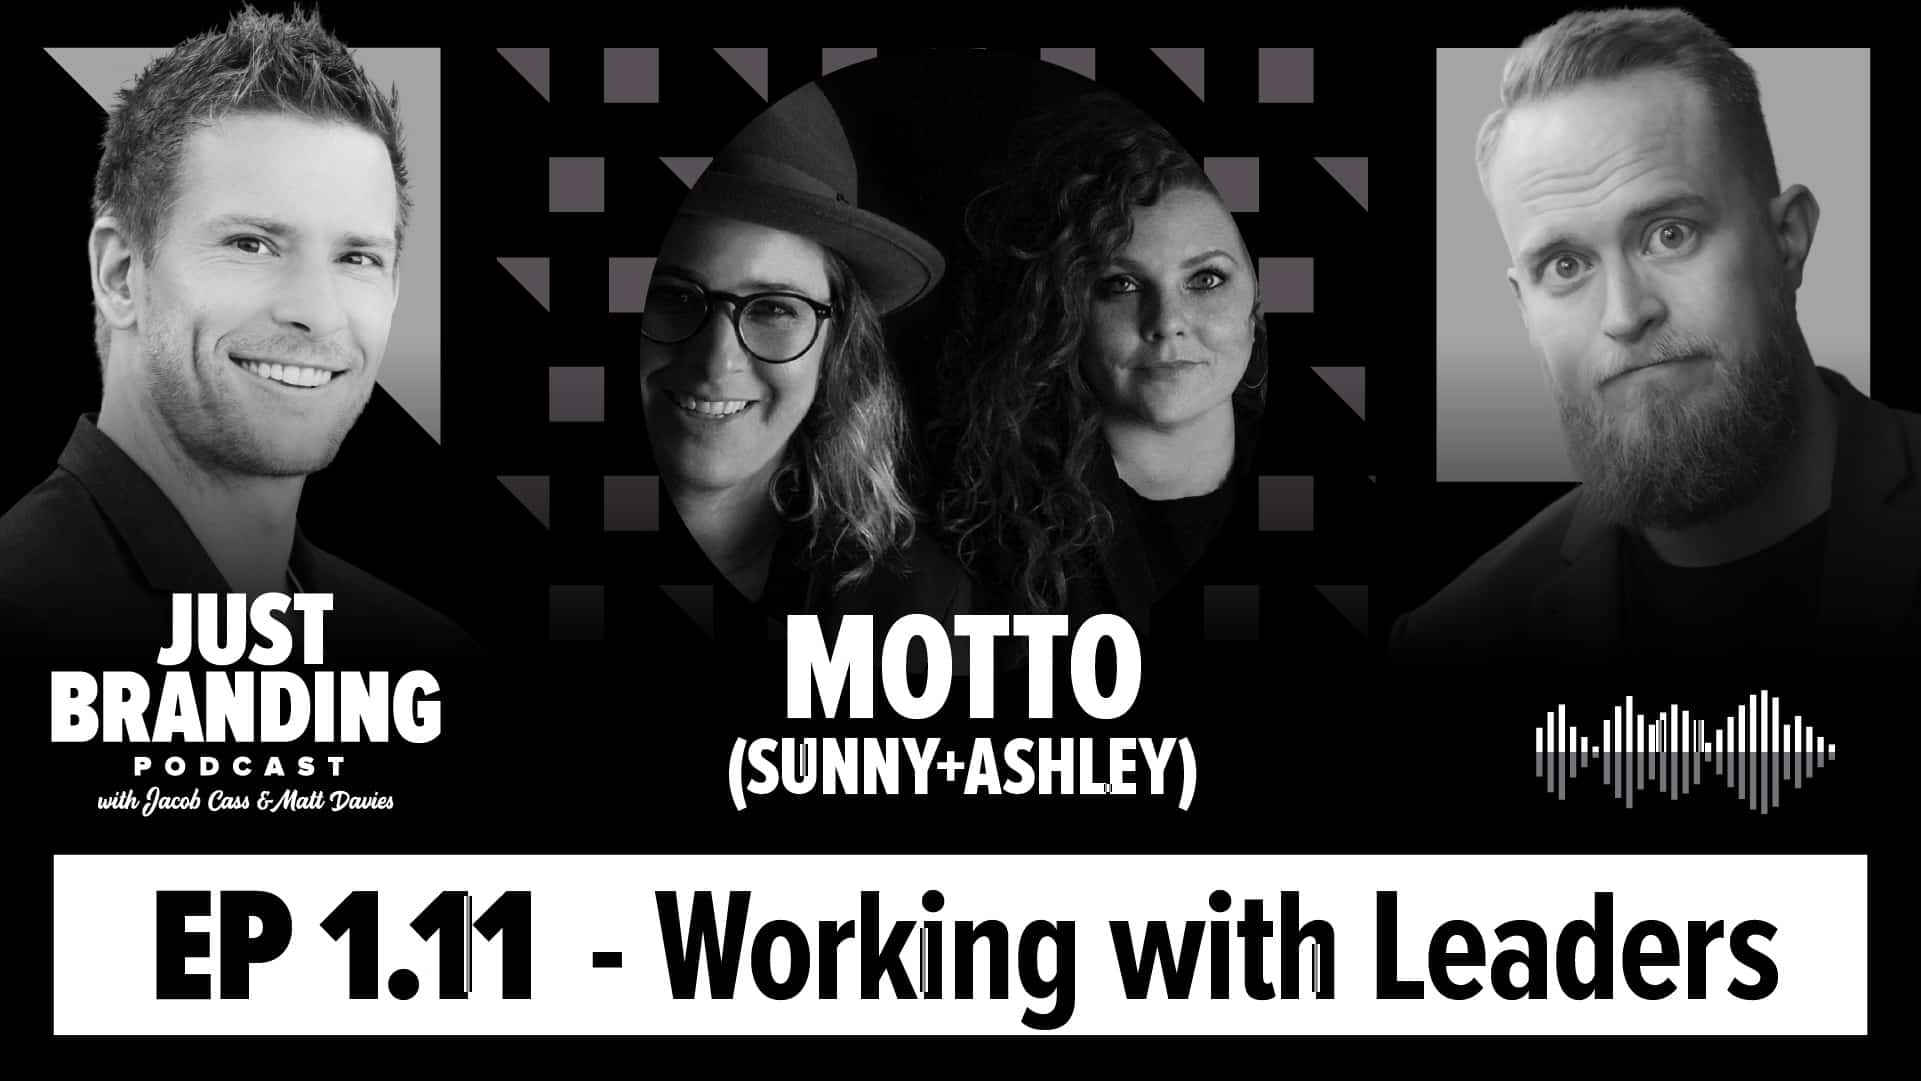 Working With Leaders Podcast